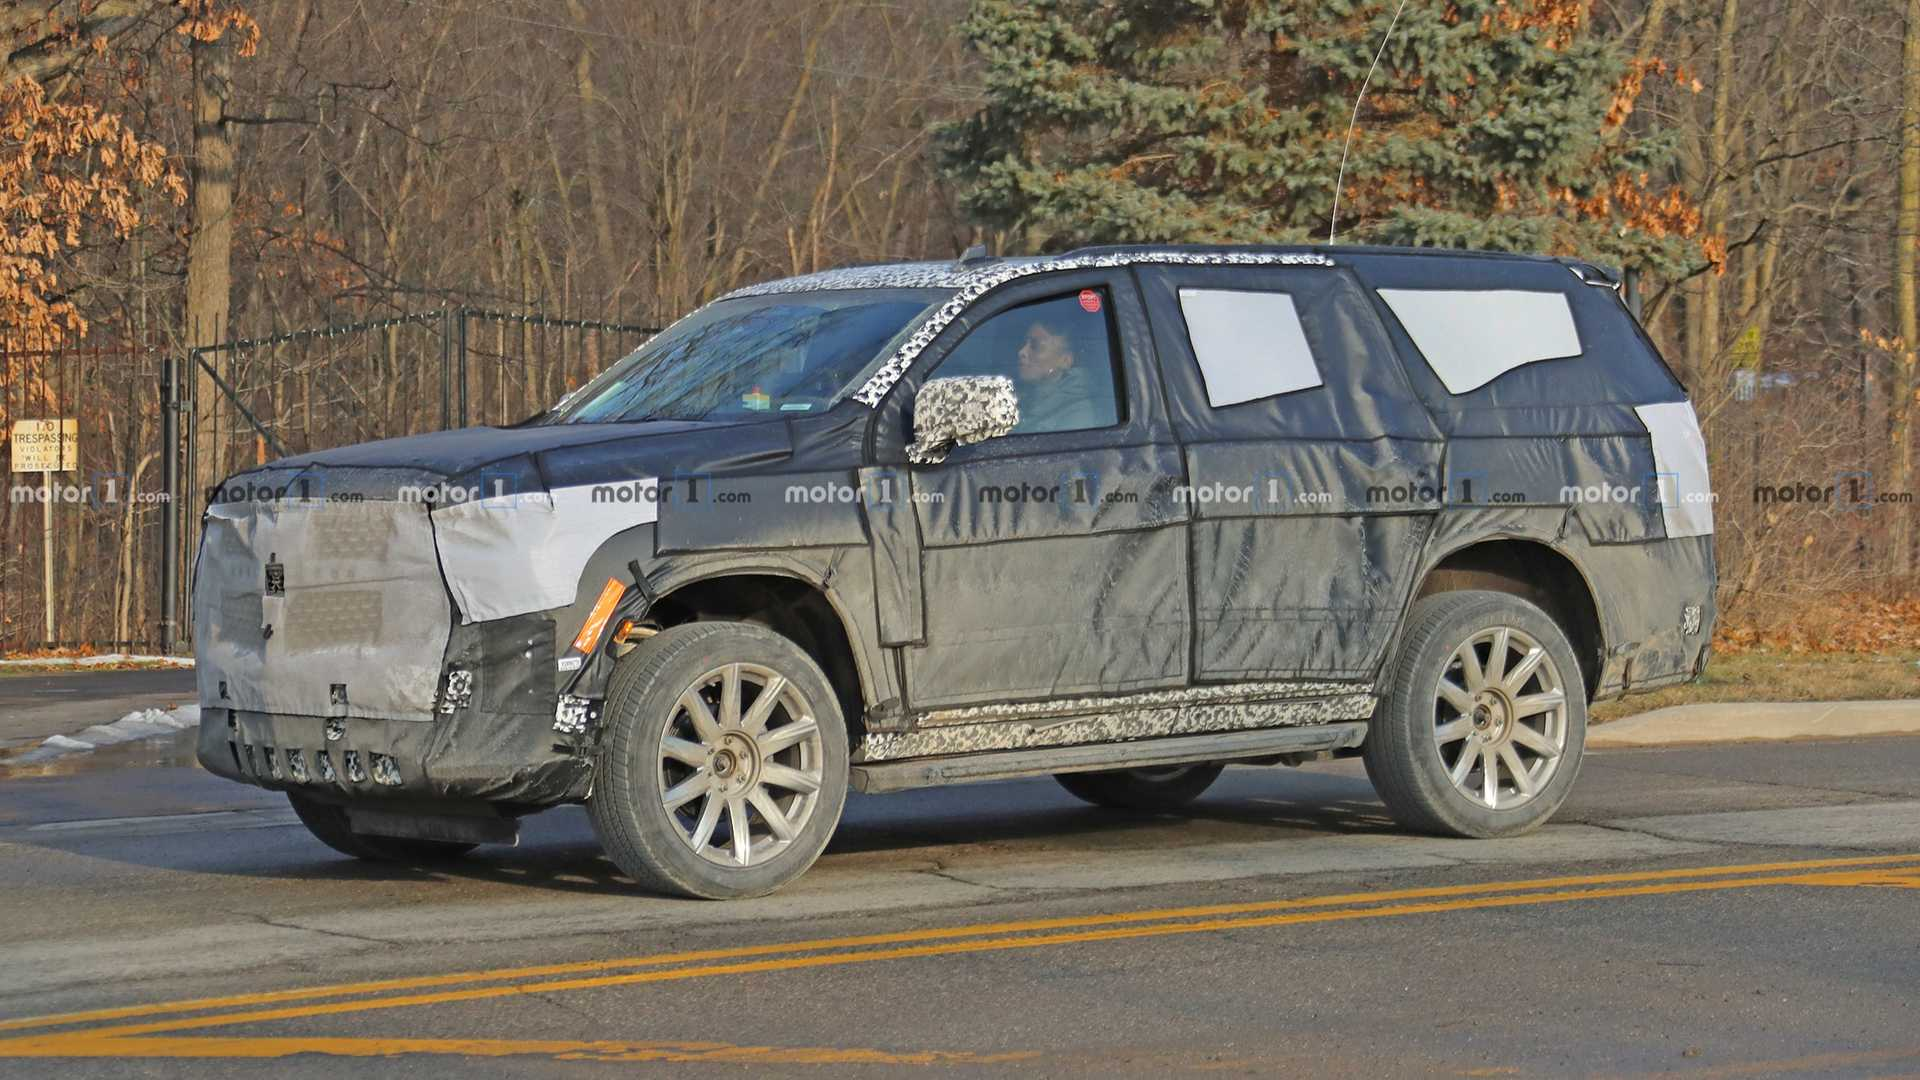 12 New 2020 Cadillac Escalade Latest News New Review with 2020 Cadillac Escalade Latest News